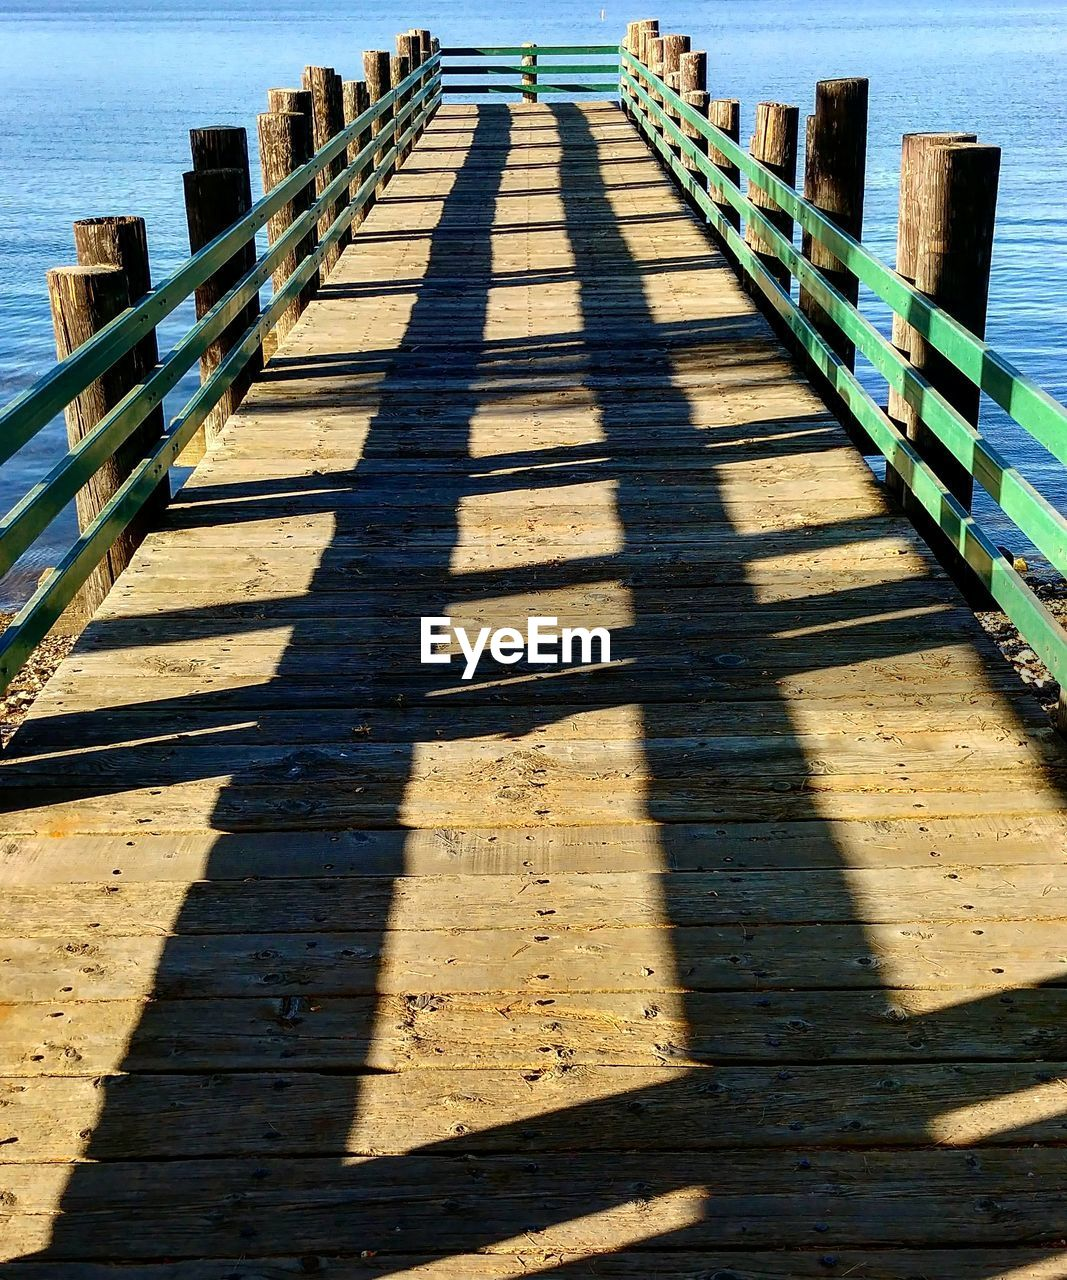 shadow, sunlight, nature, the way forward, railing, direction, day, no people, architecture, outdoors, focus on shadow, built structure, footpath, diminishing perspective, wood - material, water, pier, high angle view, sunny, wood, long